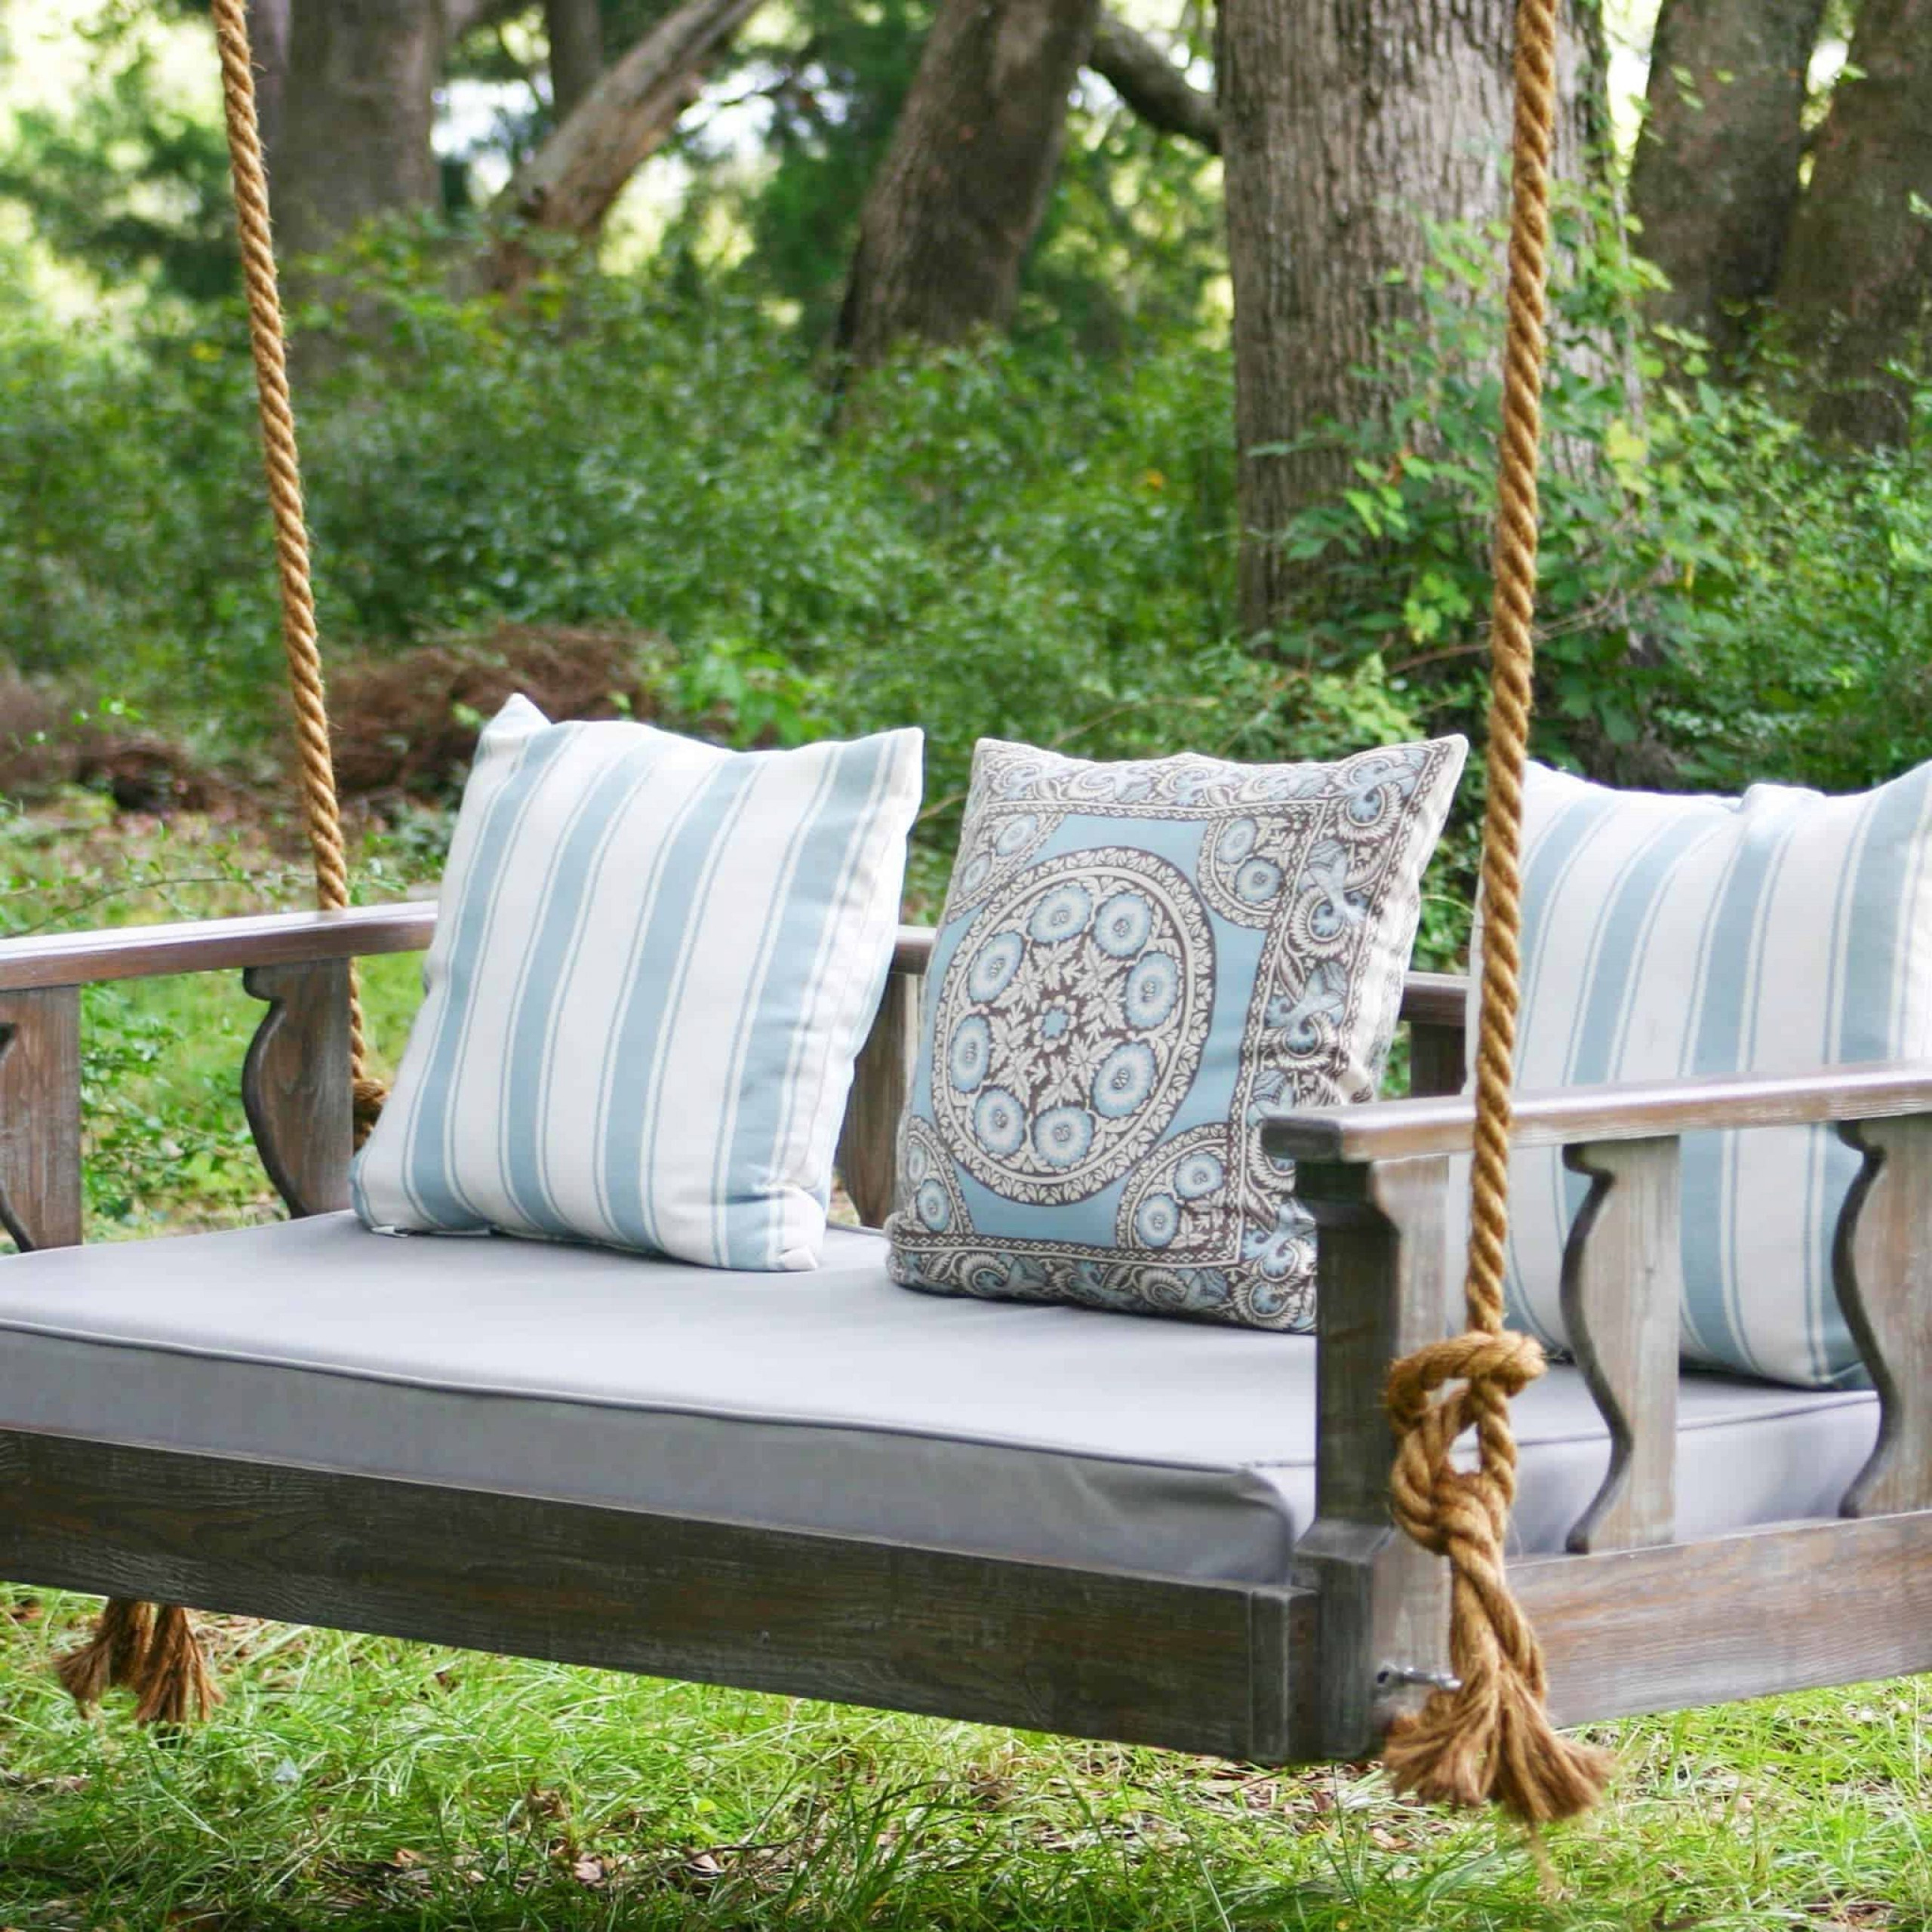 Classic Porch Swings For Famous Bed Swings And Porch Swings, Handmadevintage Porch Swings (View 13 of 30)